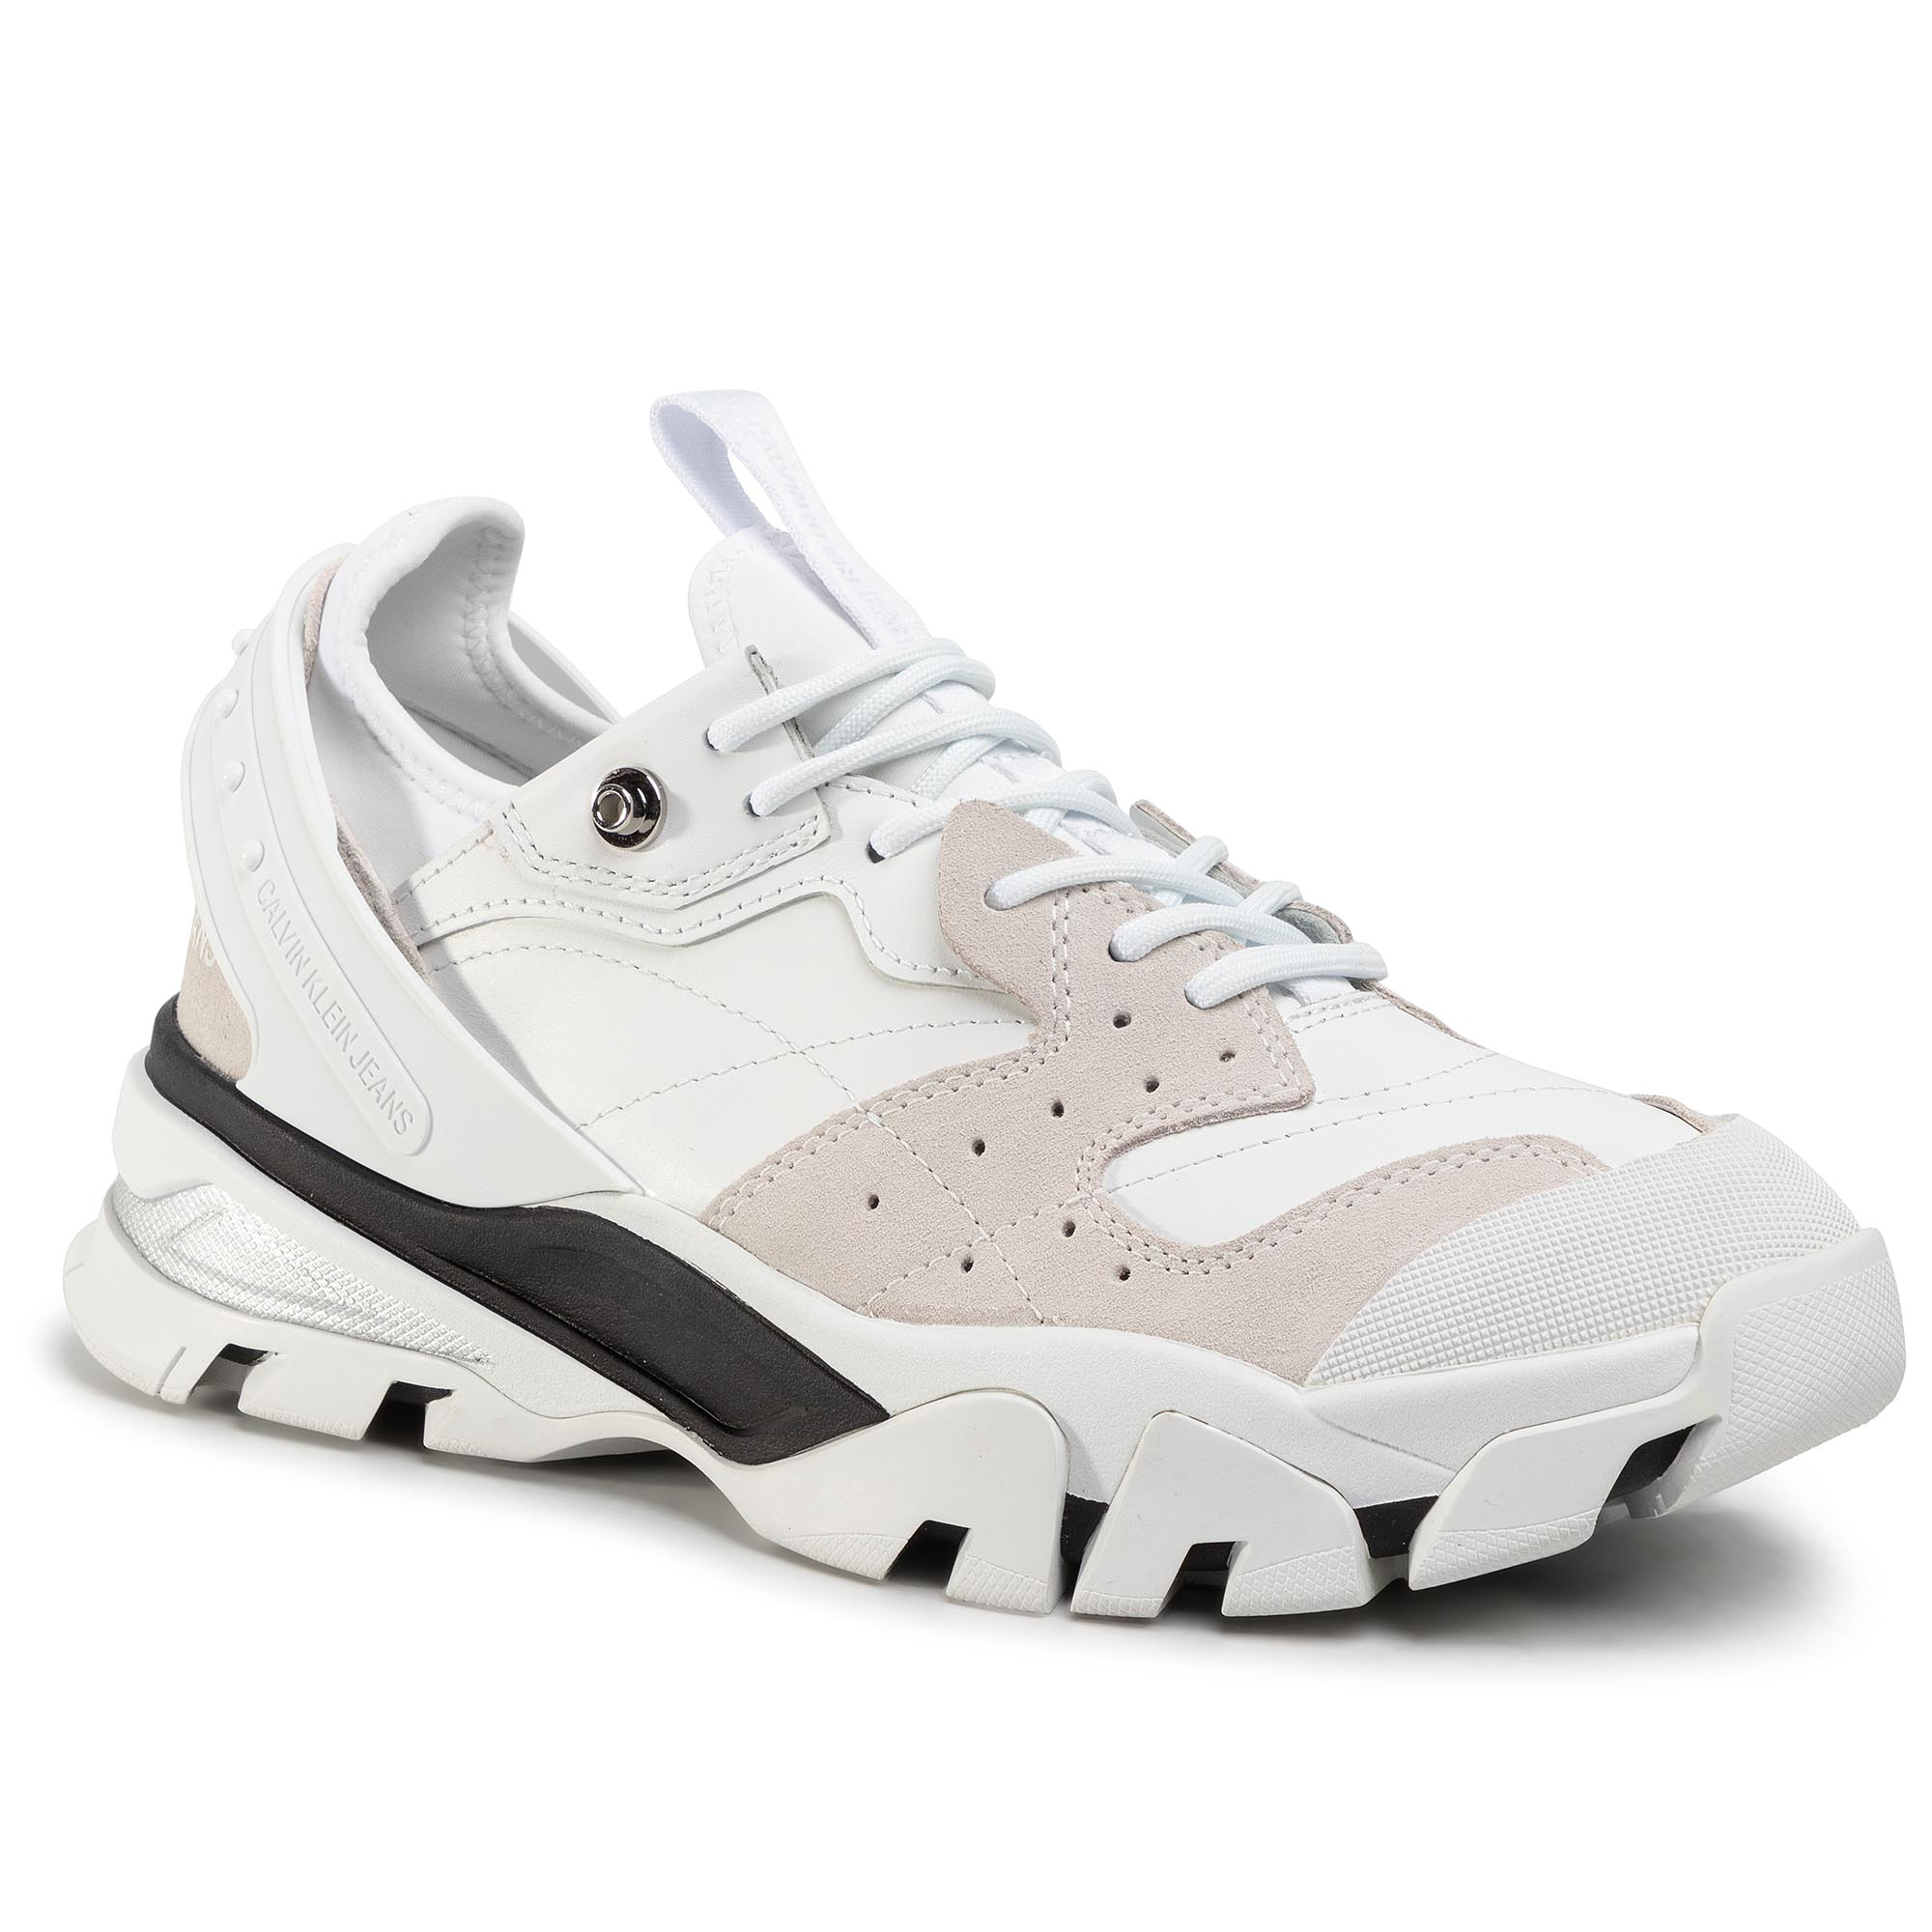 Image of Sneakers CALVIN KLEIN JEANS - Calador B4S0665 White